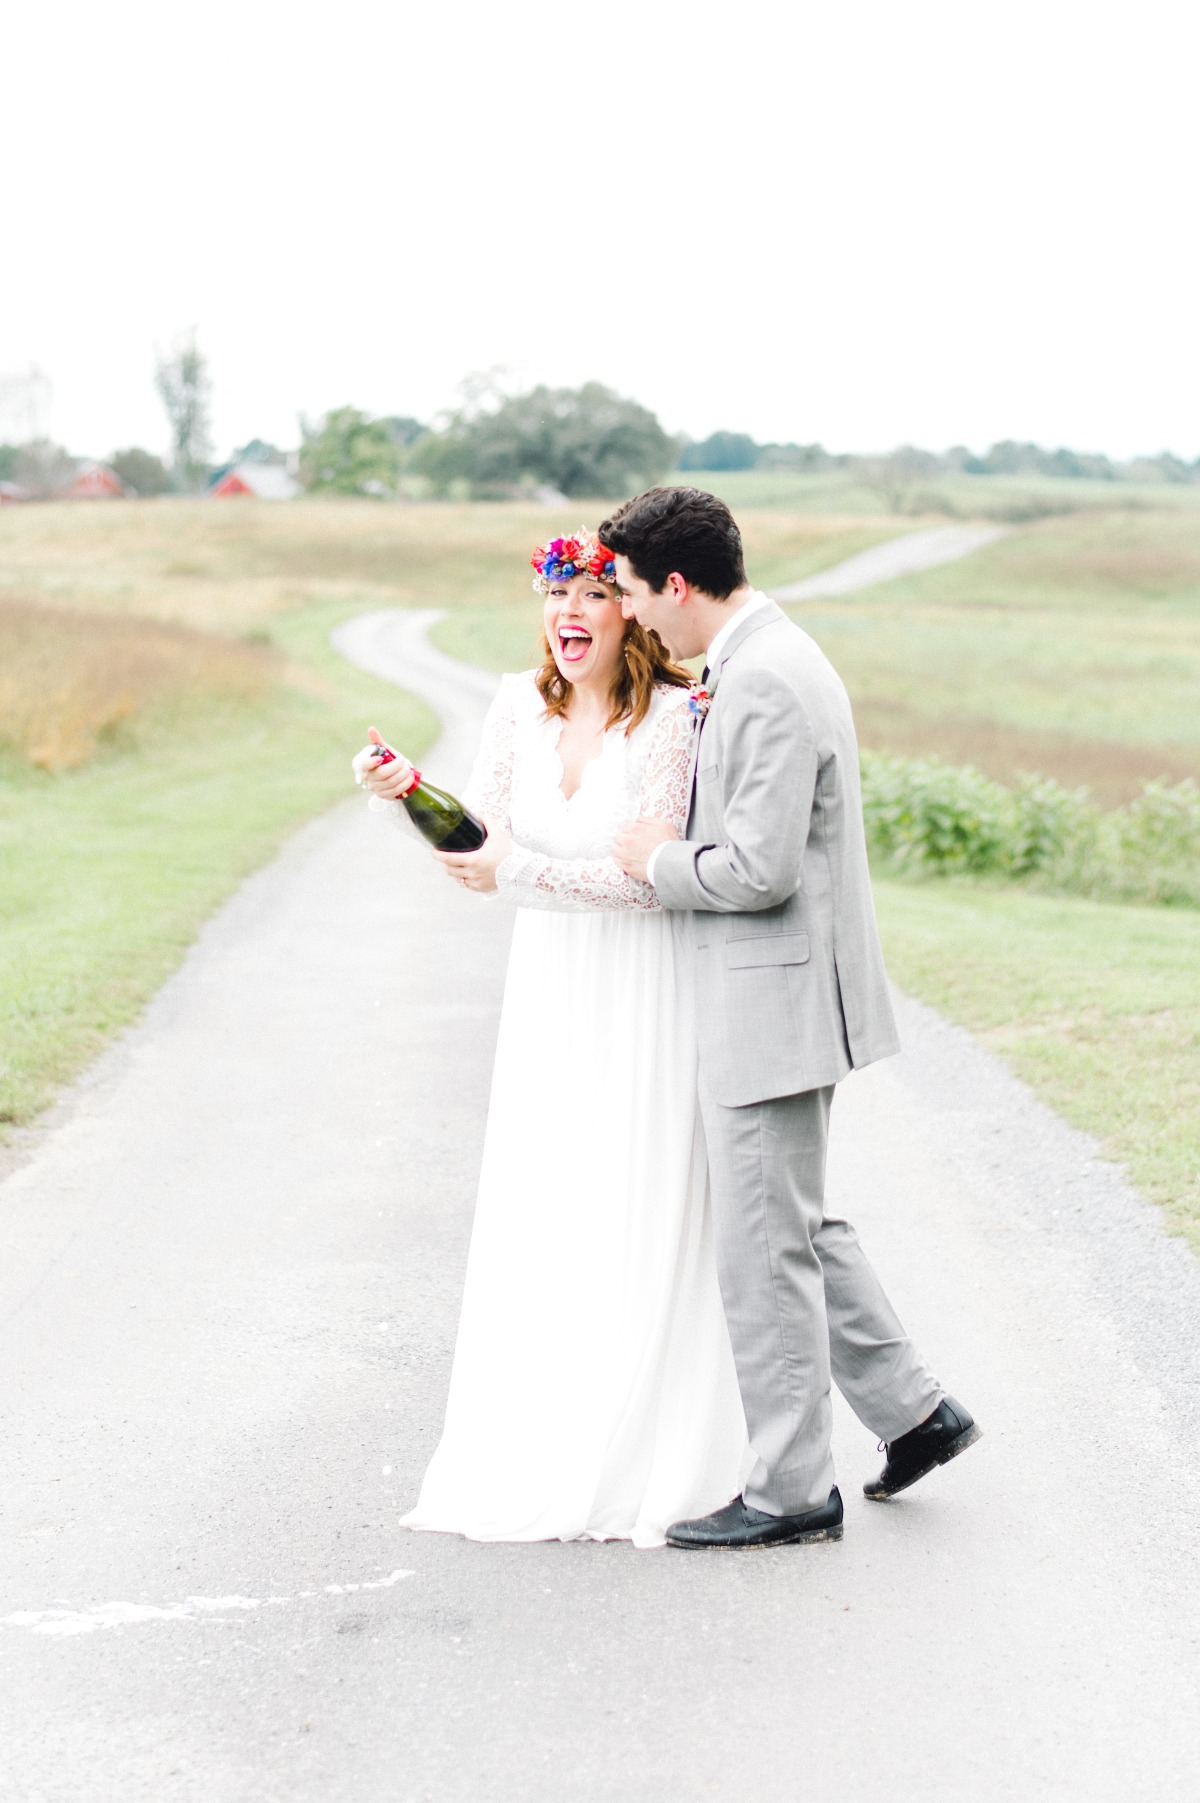 Fun elopement ideas